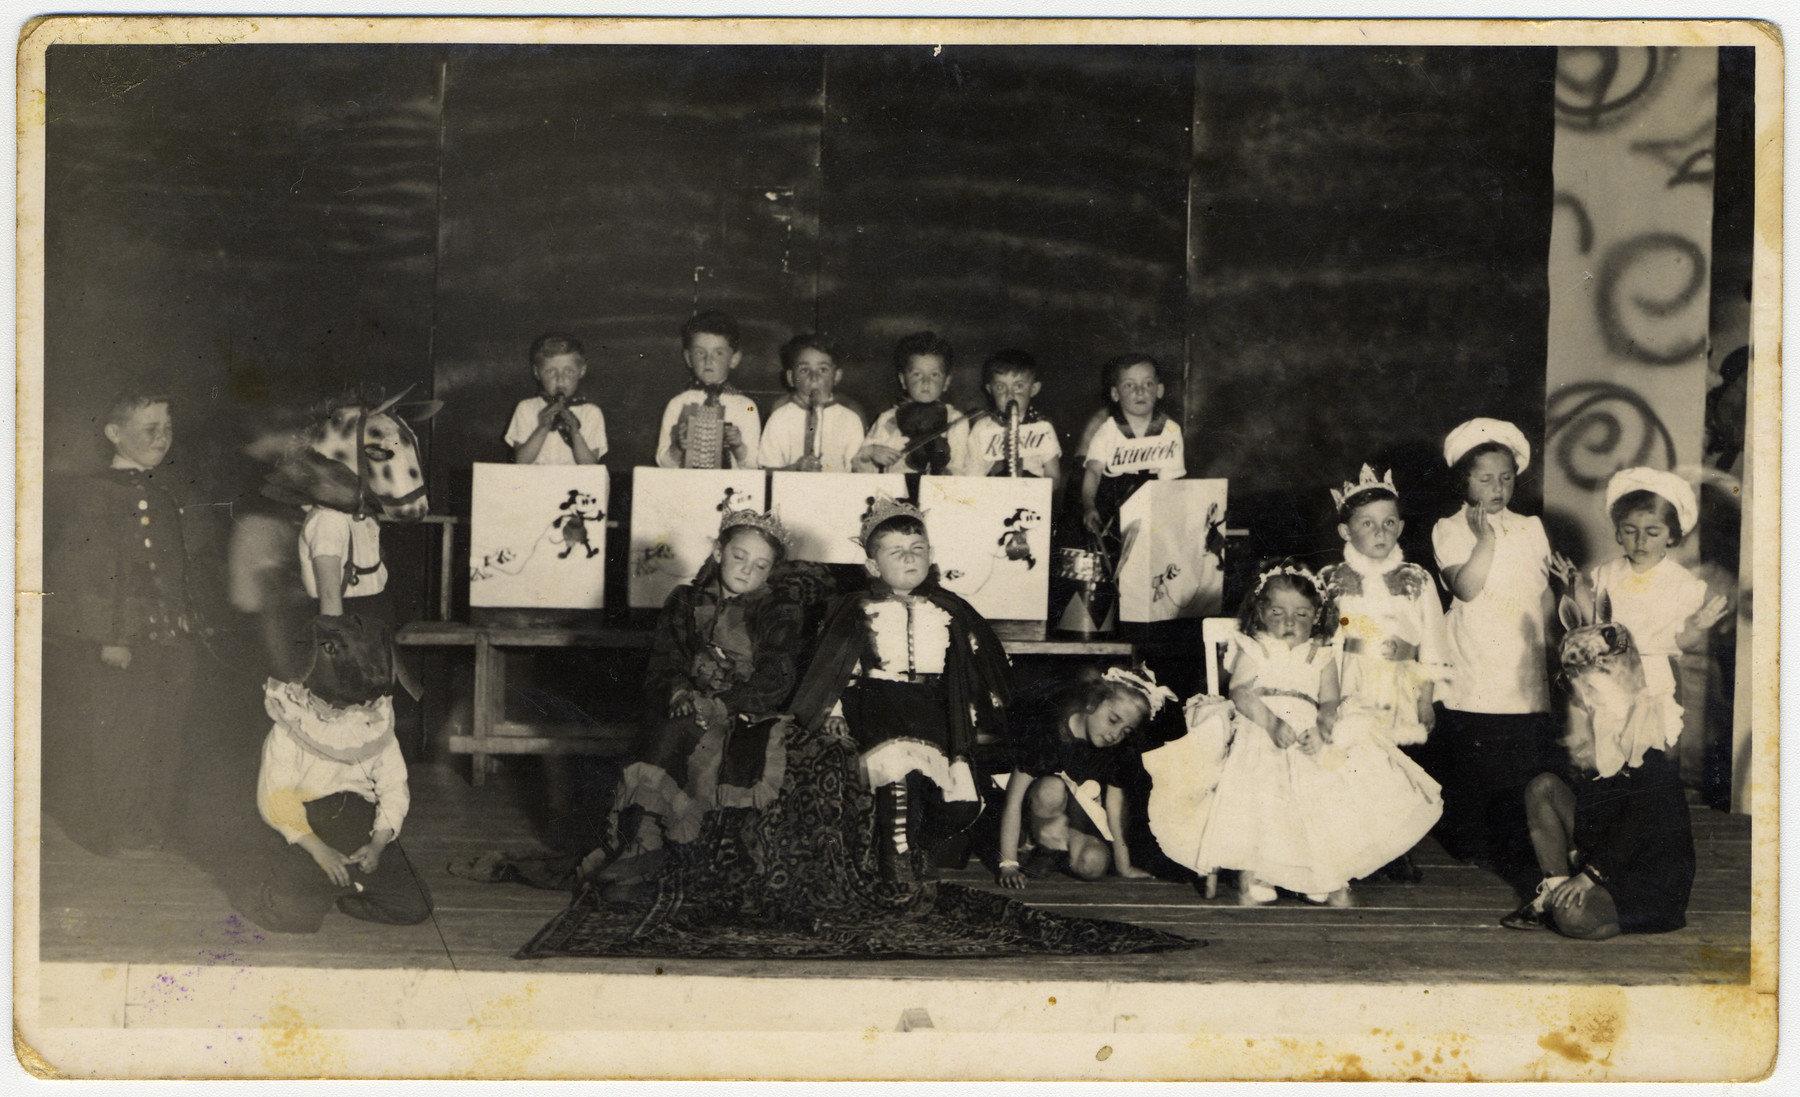 Jewish children put on a school performance at the Novaky forced labor camp.    The donor Mira Menzer, dressed as a queen, sits in the middle.  A boy, Yossi plays the violin and stands third from right